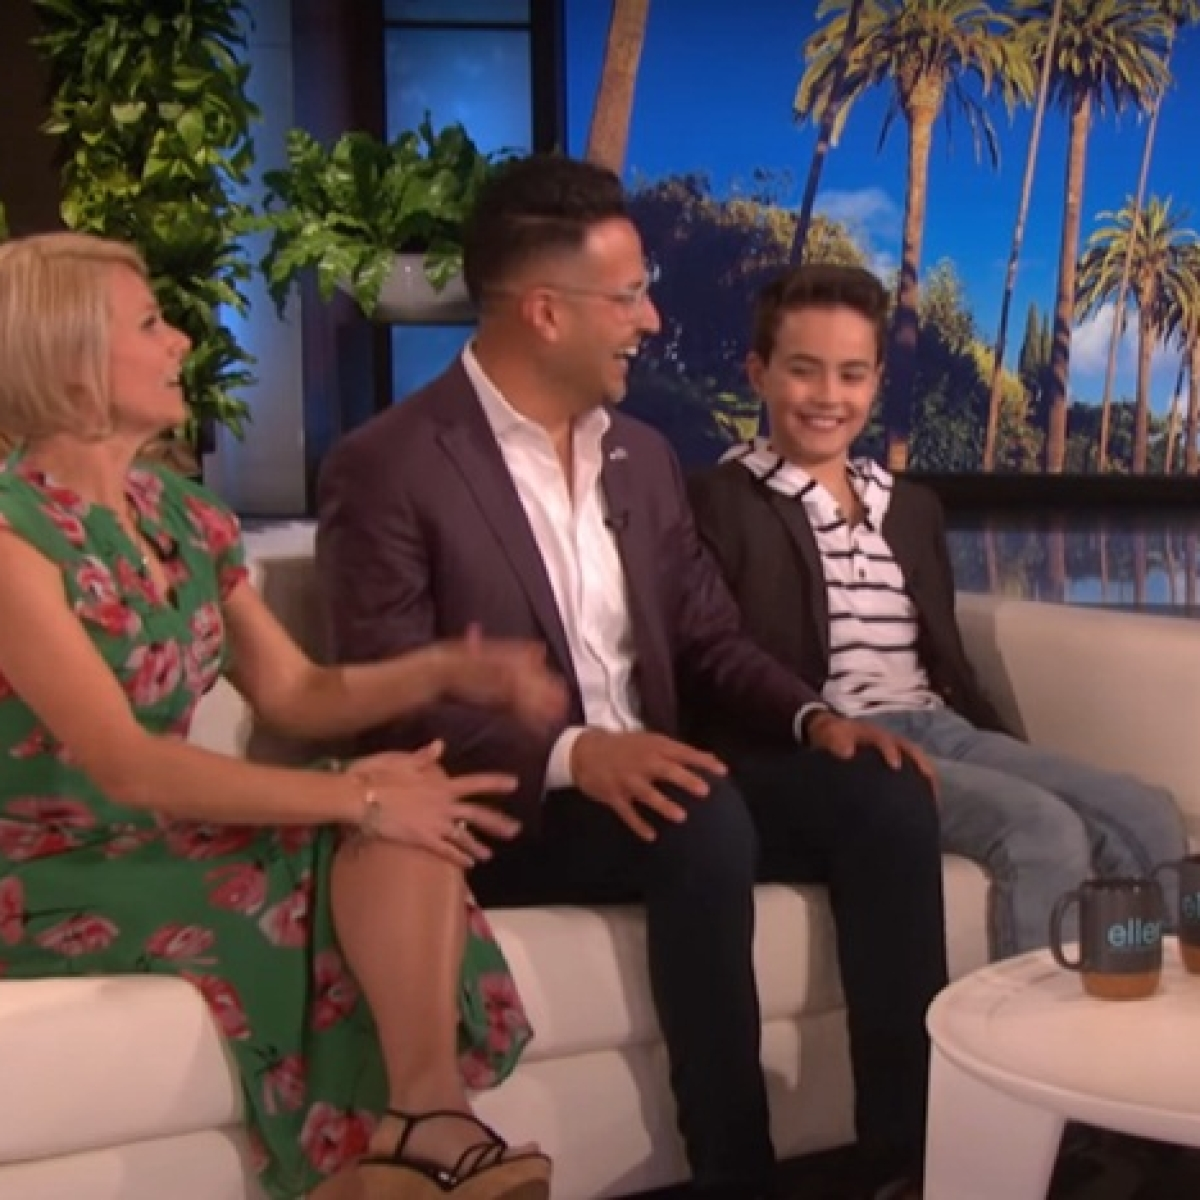 Watch: Robert Downey Jr. meets fan with autism who can now speak, thanks to 'Iron Man' mask